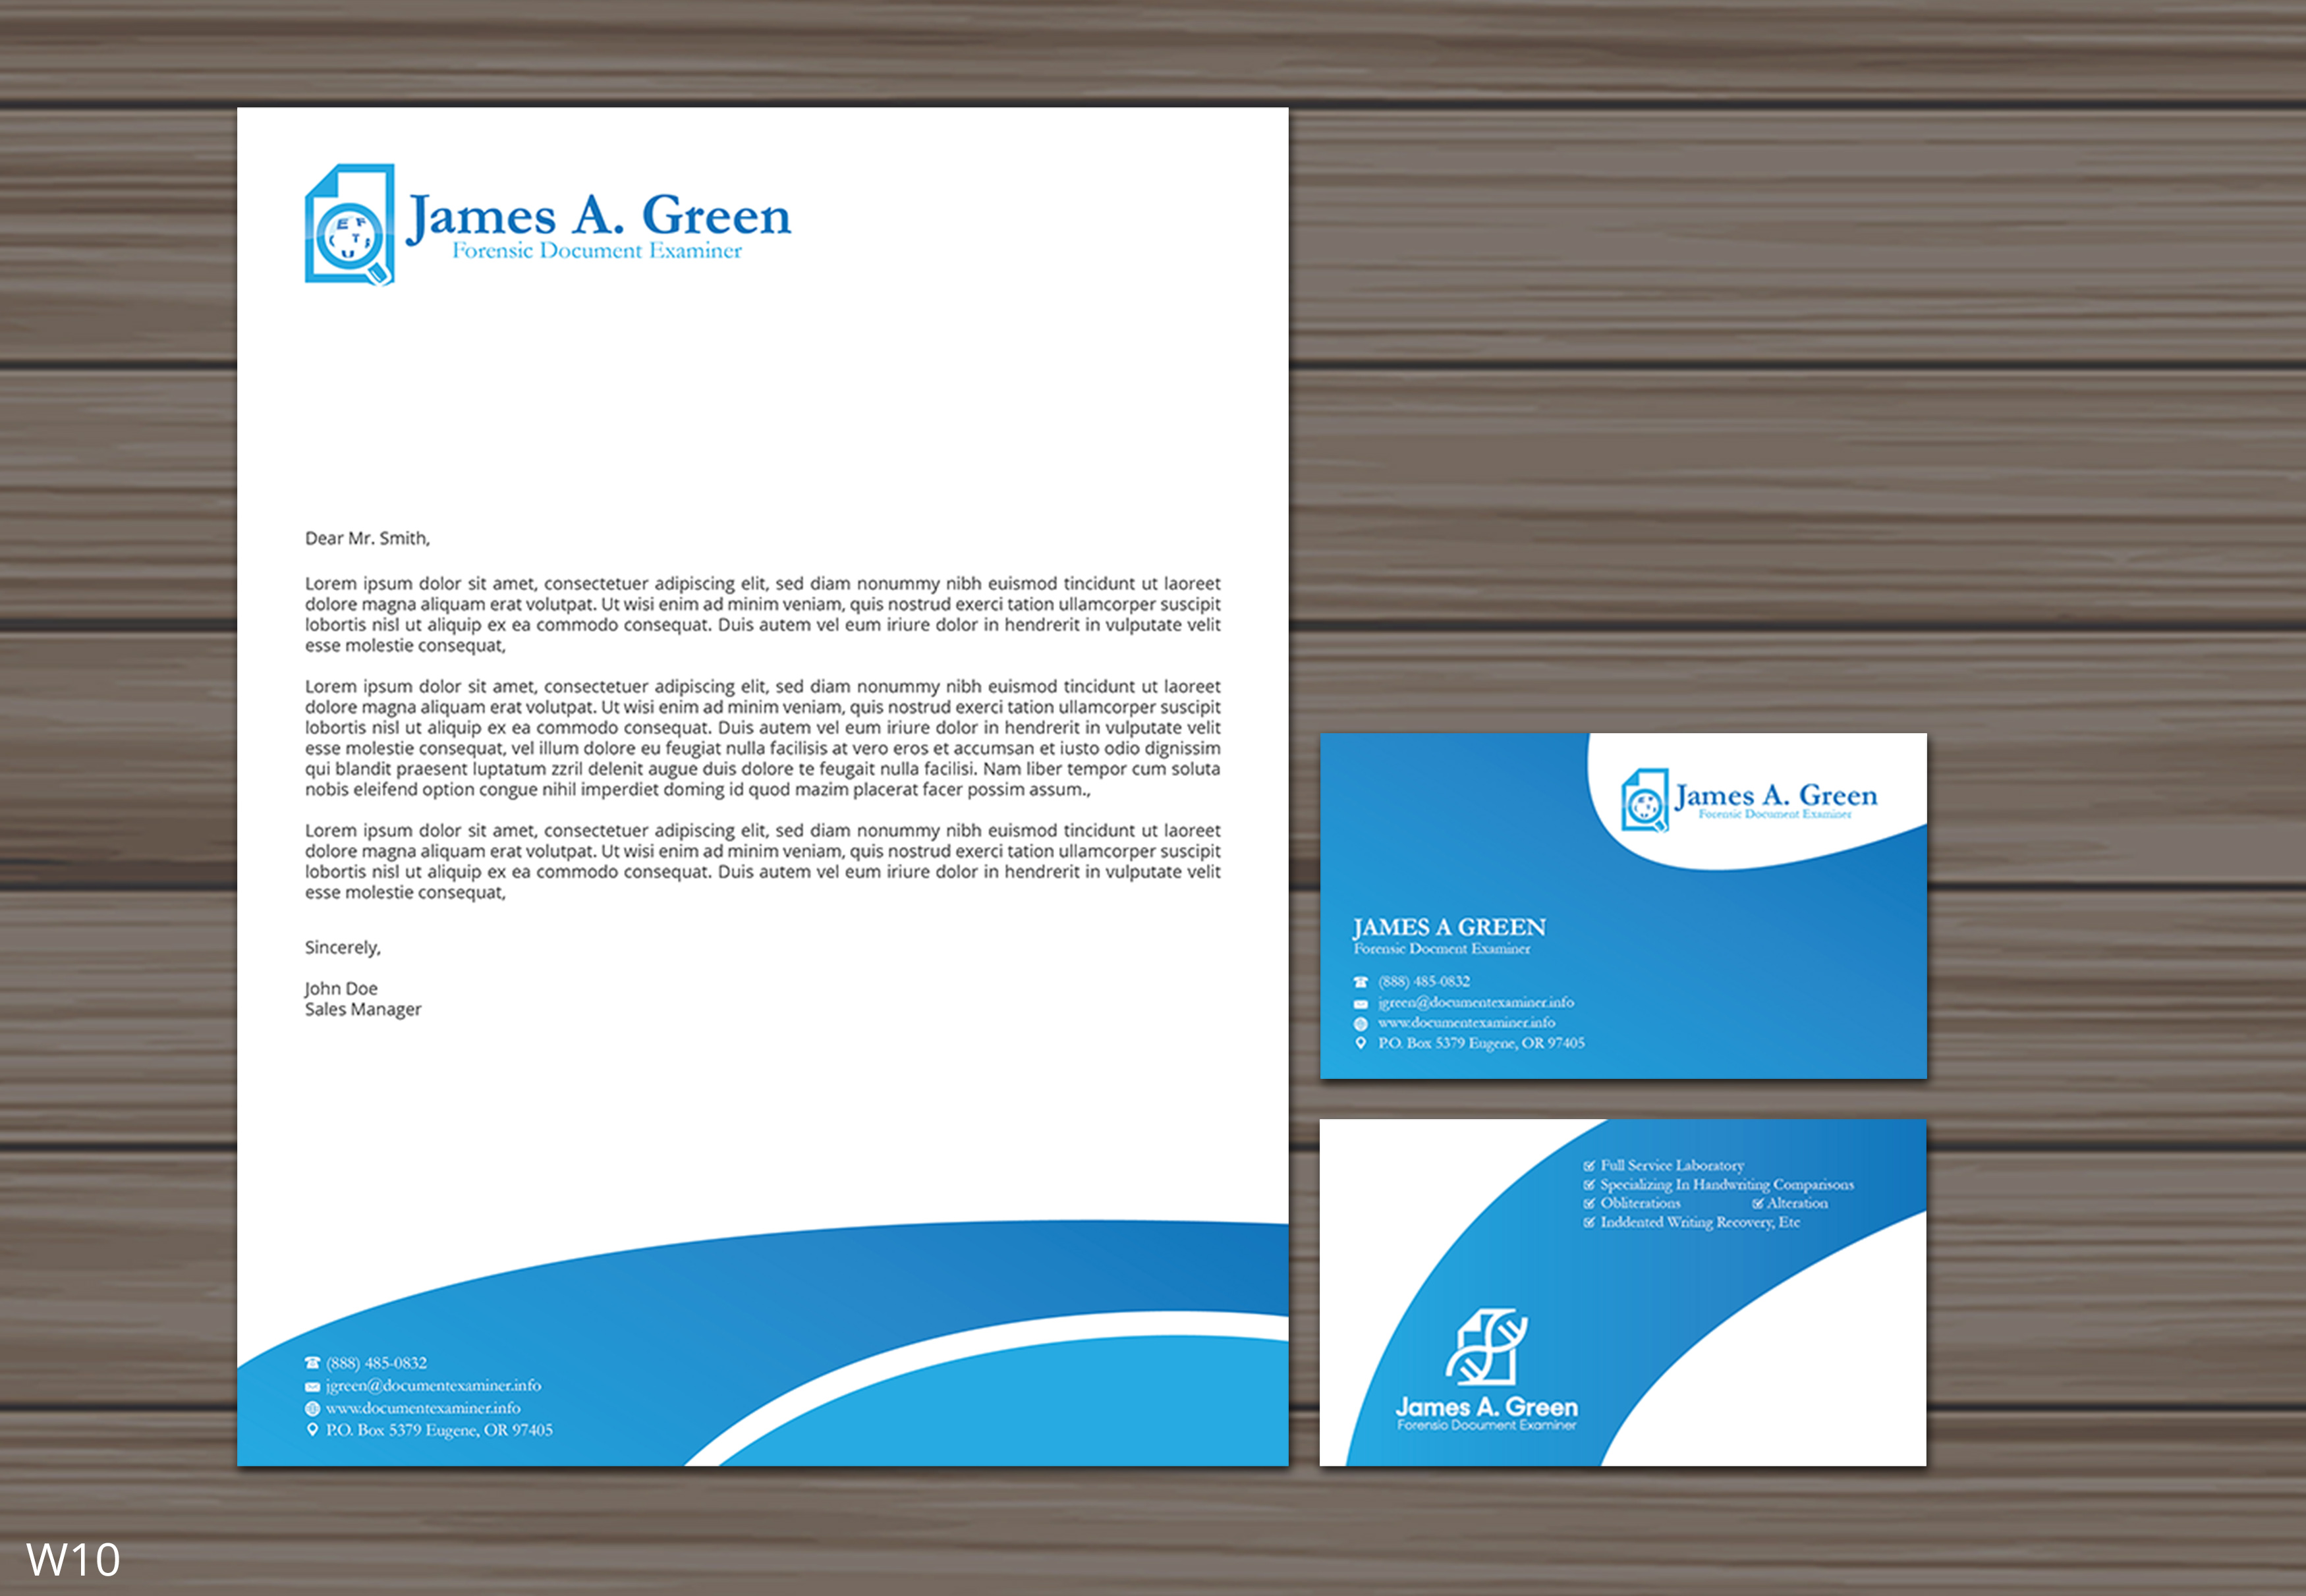 Professional Serious Stationery Design For Forensic Document Examiner By Designanddevelopment Design 22123698